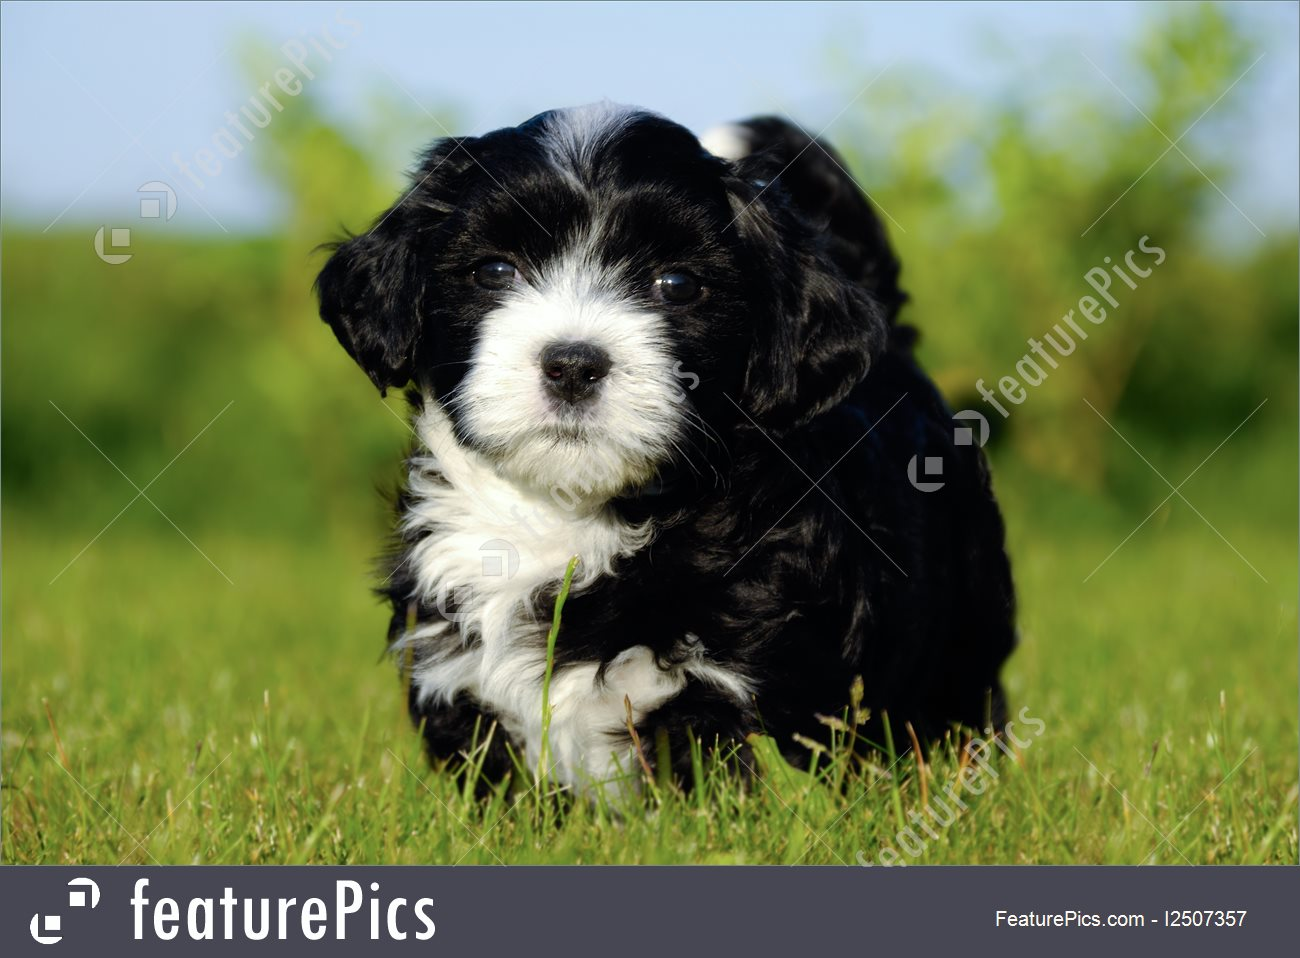 Picture Of Bichon Havanais Puppy Dog.